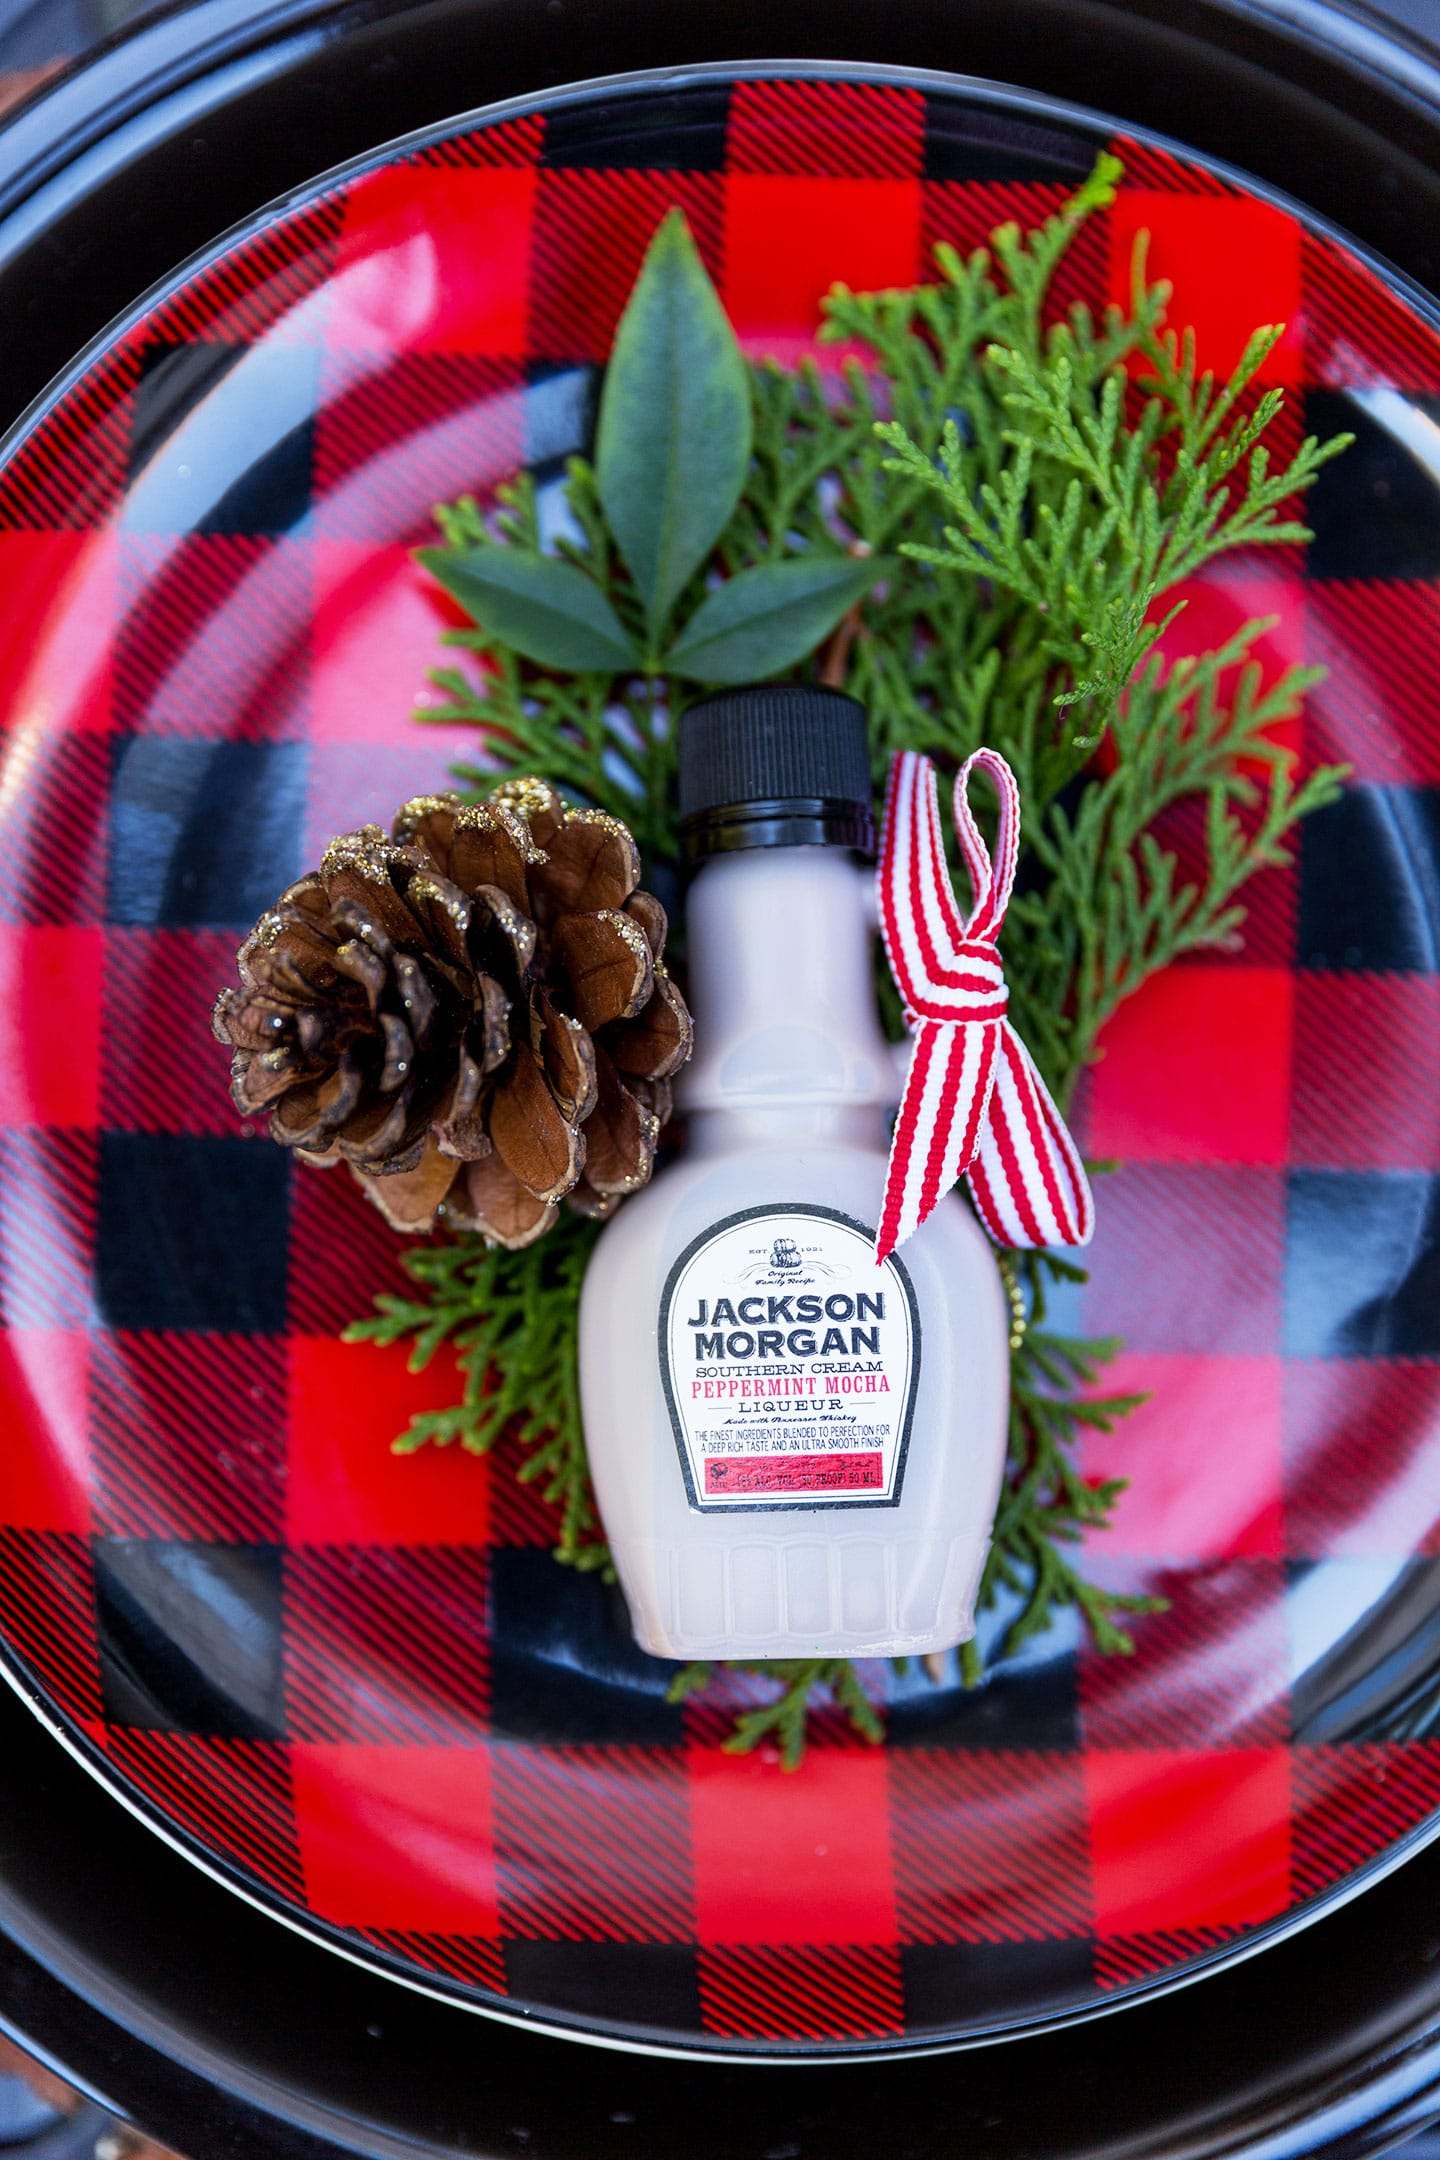 Jackson Morgan Southern Cream as favor for holiday party!